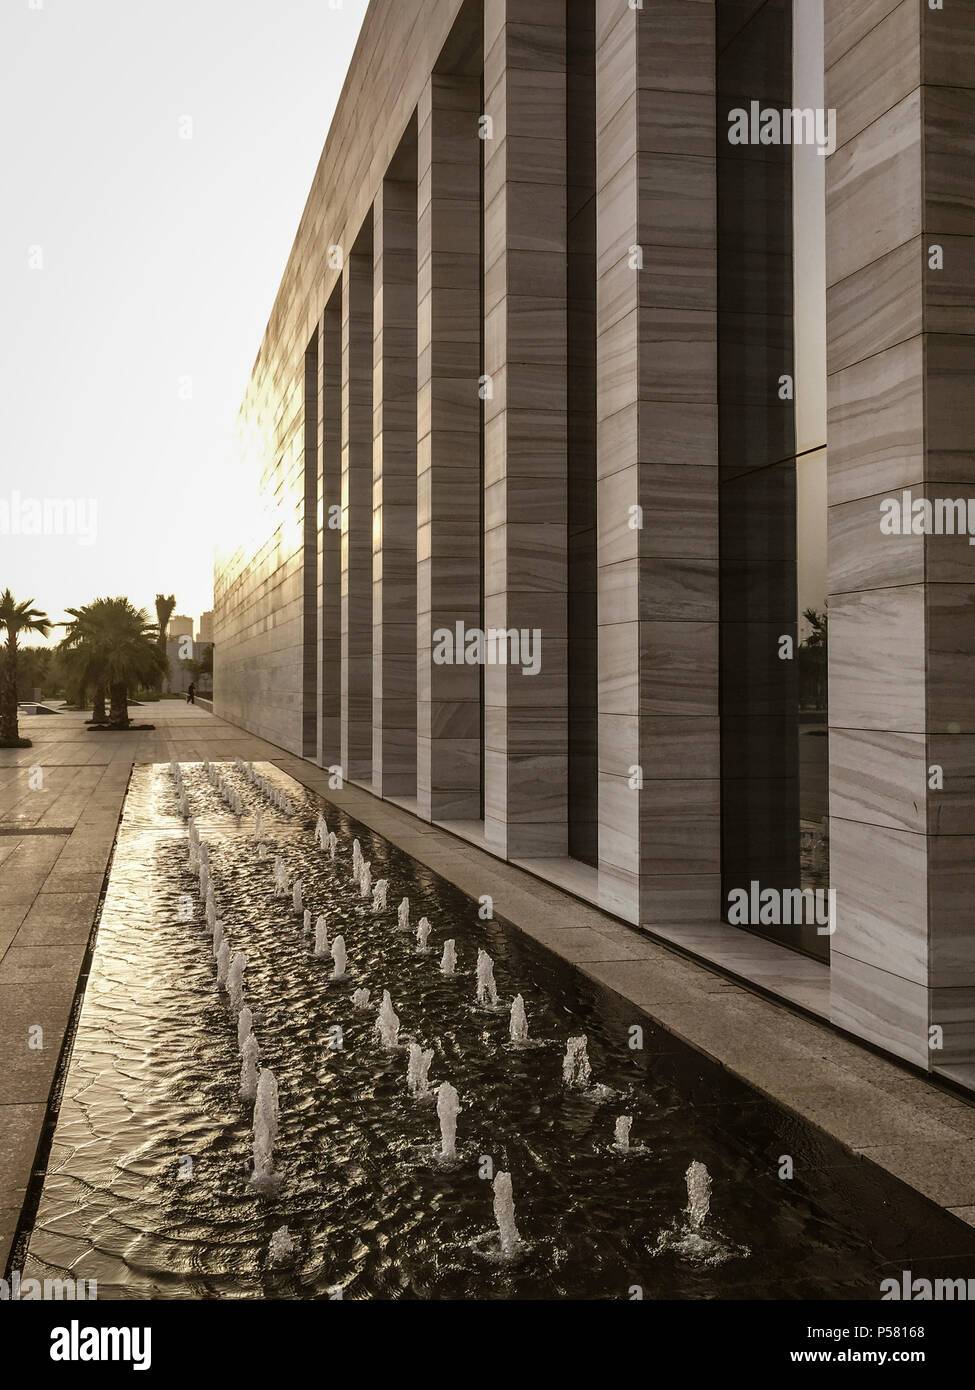 View of the new Sheikh Abdullah Al Salem Cultural Centre and museums (opened March 2018) in Kuwait City, Kuwait - Stock Image